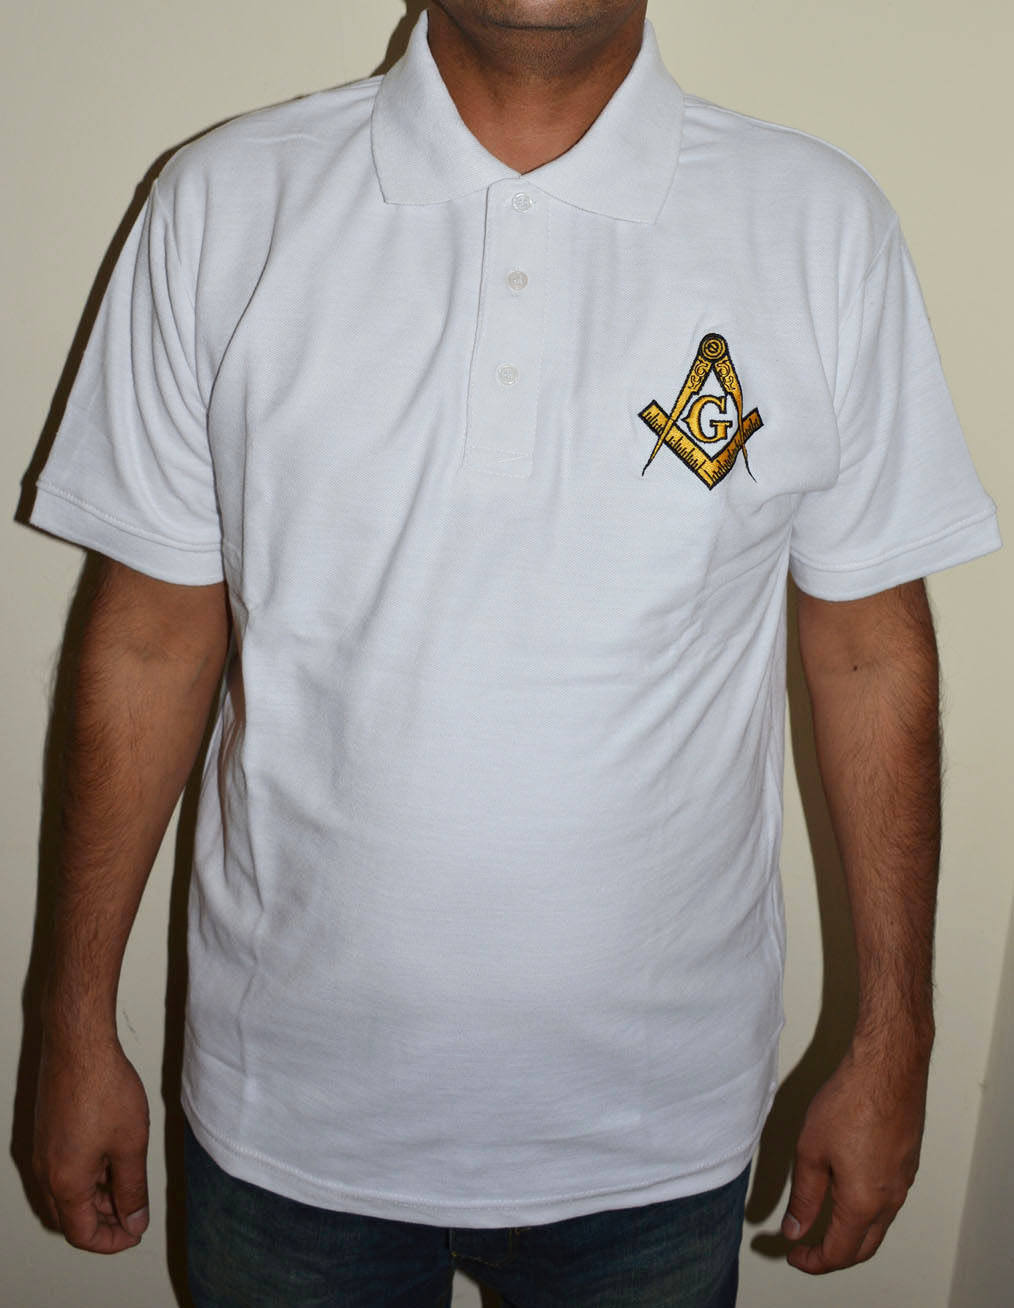 Masonic Compass and Square emblem Custom Embroidered Polo Shirt